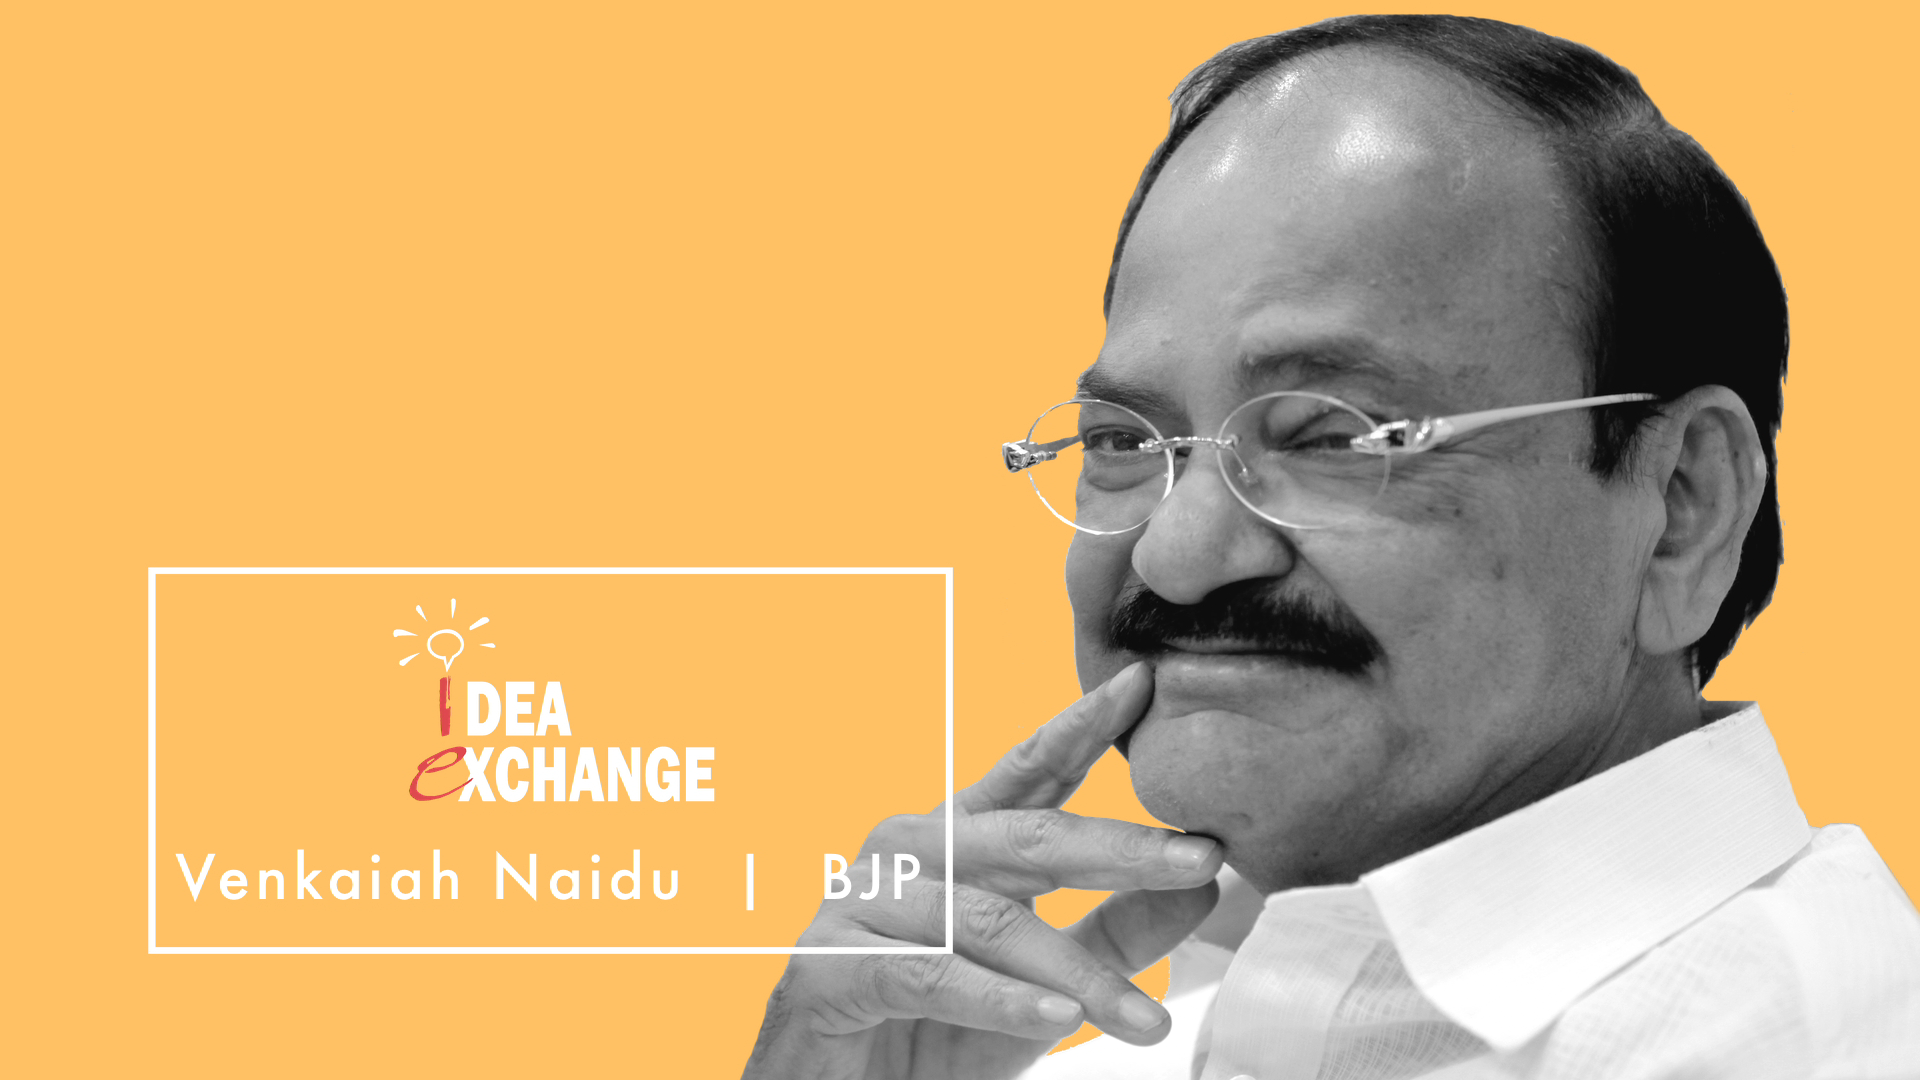 No BJP leader is afraid of Narendra Modi: Venkaiah Naidu at Idea Exchange